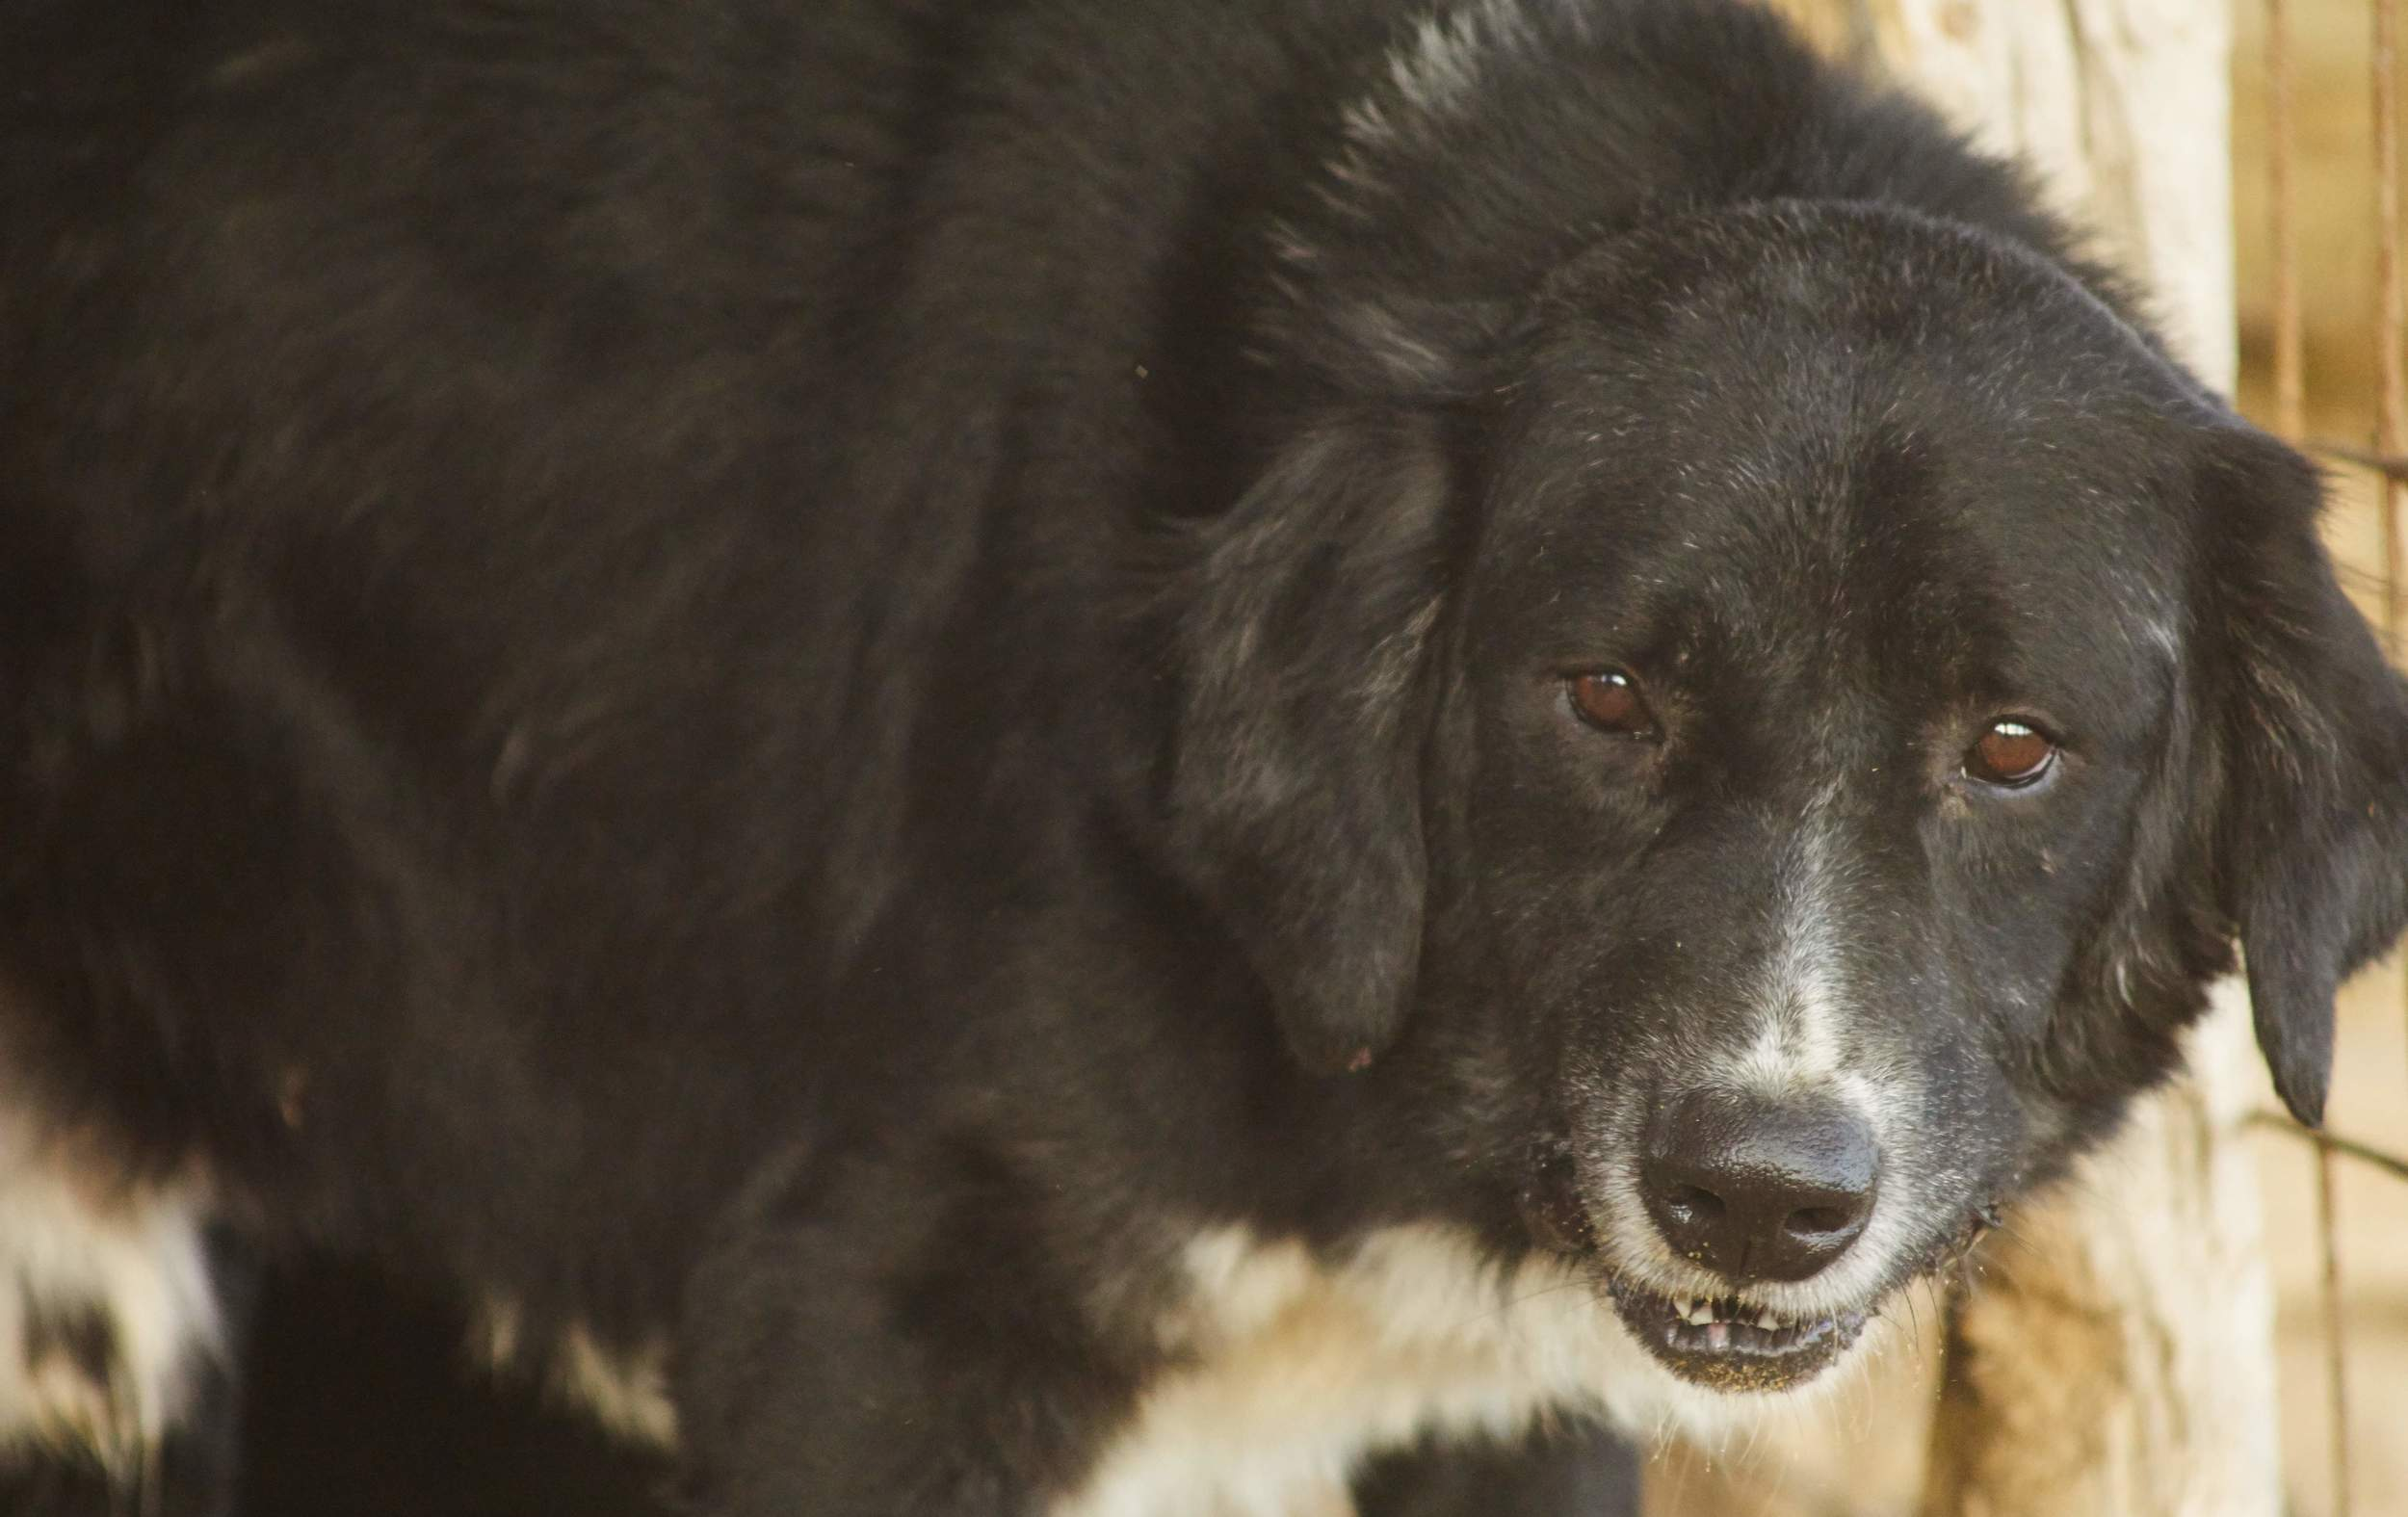 Malcom Greek sheep dog | Mykonos dog rescue and adoption | Yiannis and Angeliki Poulos